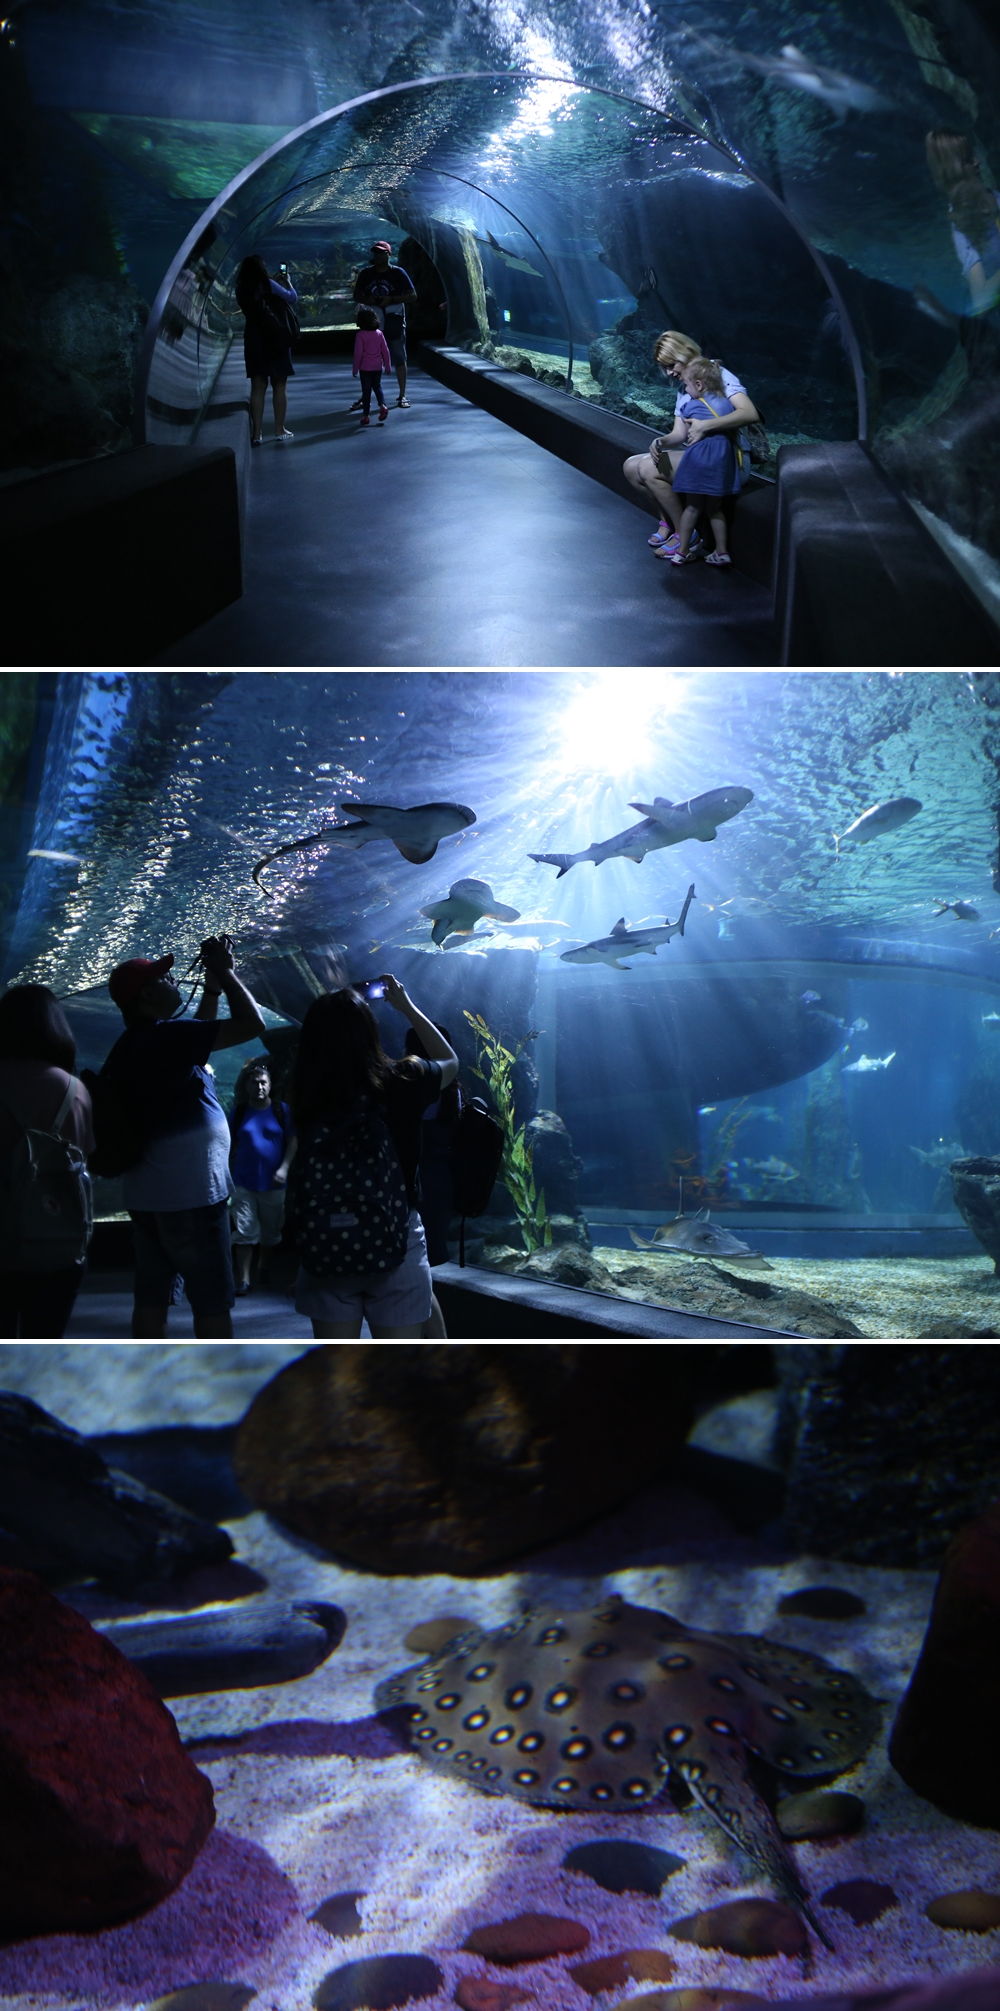 3 World Class Tourist Attractions First In Thailand Et Ticket Sea Life Ocean Aquarium Only Adult They Are Adorable And Loved By Everyone A Species Called Gentoo Is The Worlds Third Largest Trainers Say Very Smart But Cautious